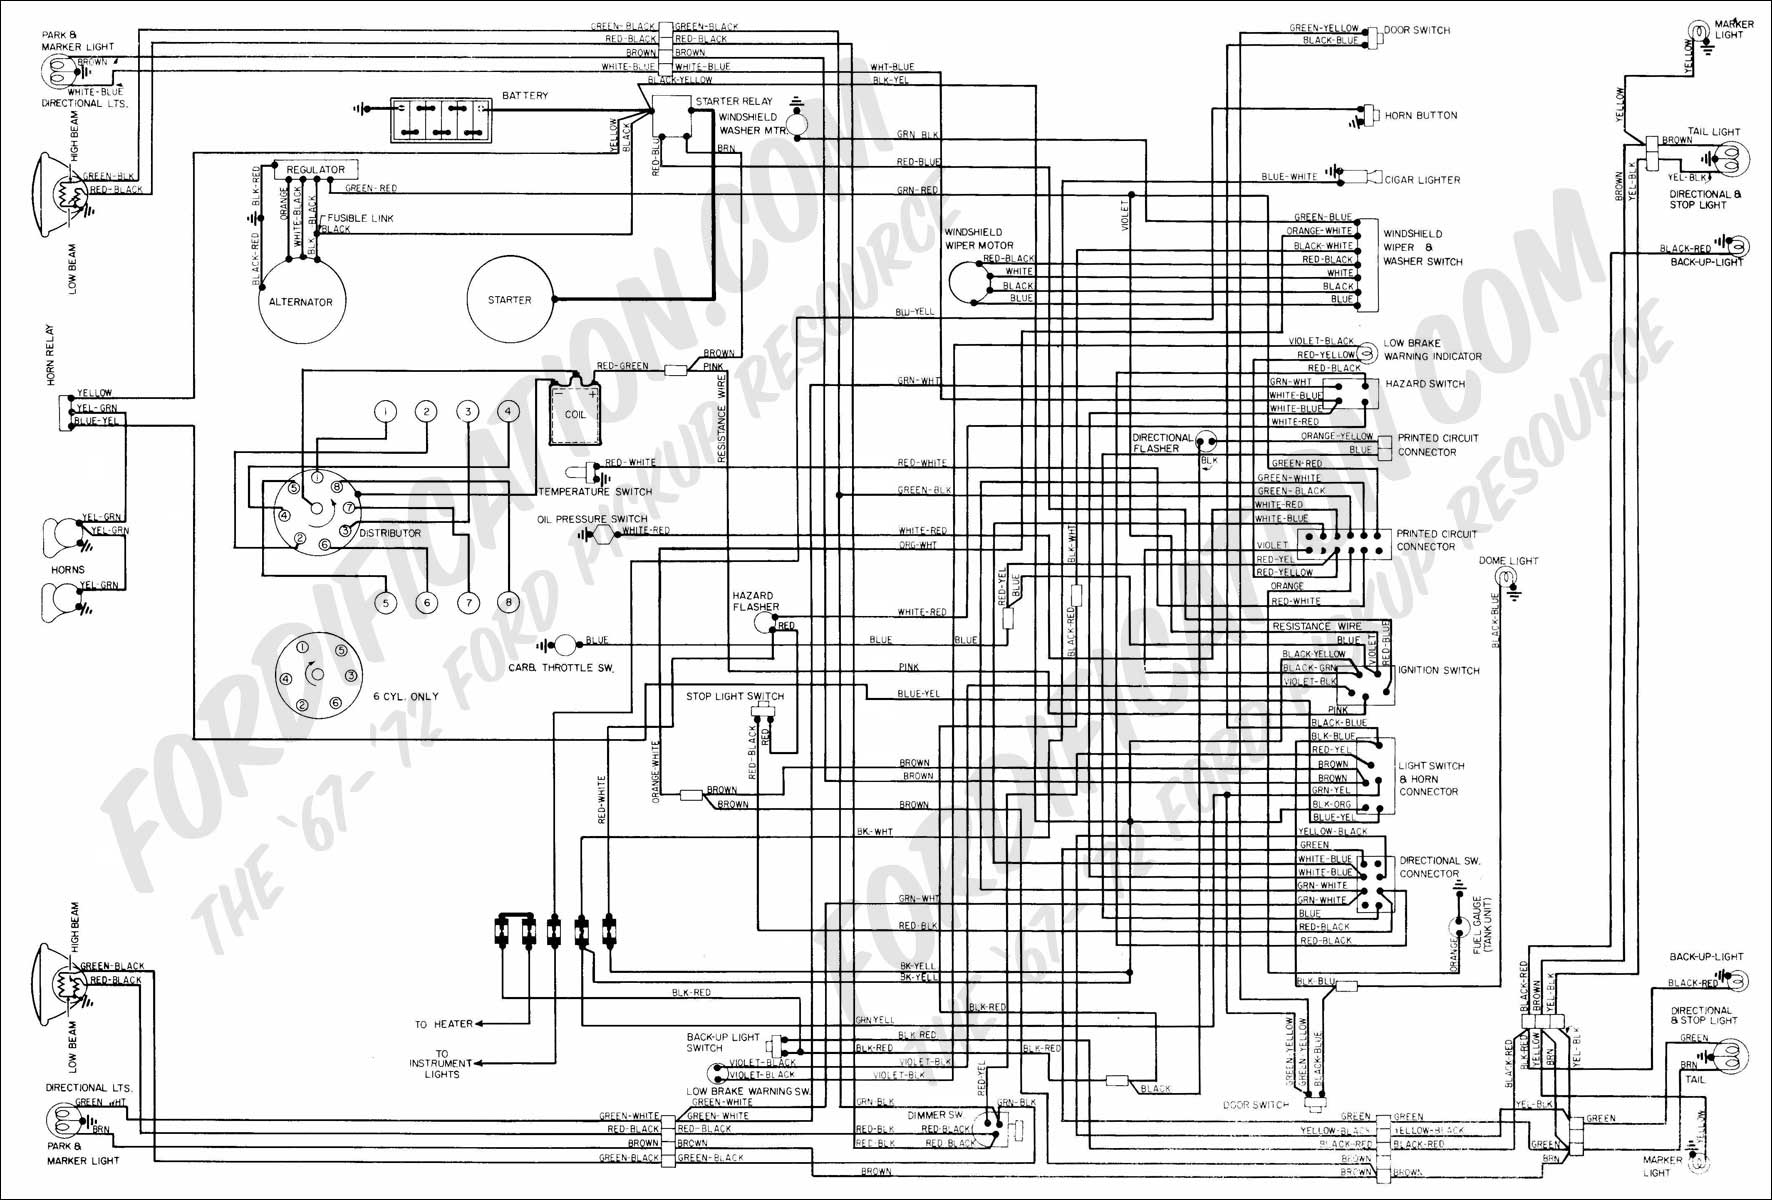 ford f series wiring diagram wiring data rh unroutine co 2000 ford f150 wiring schematic 2001 ford f150 wiring diagram download